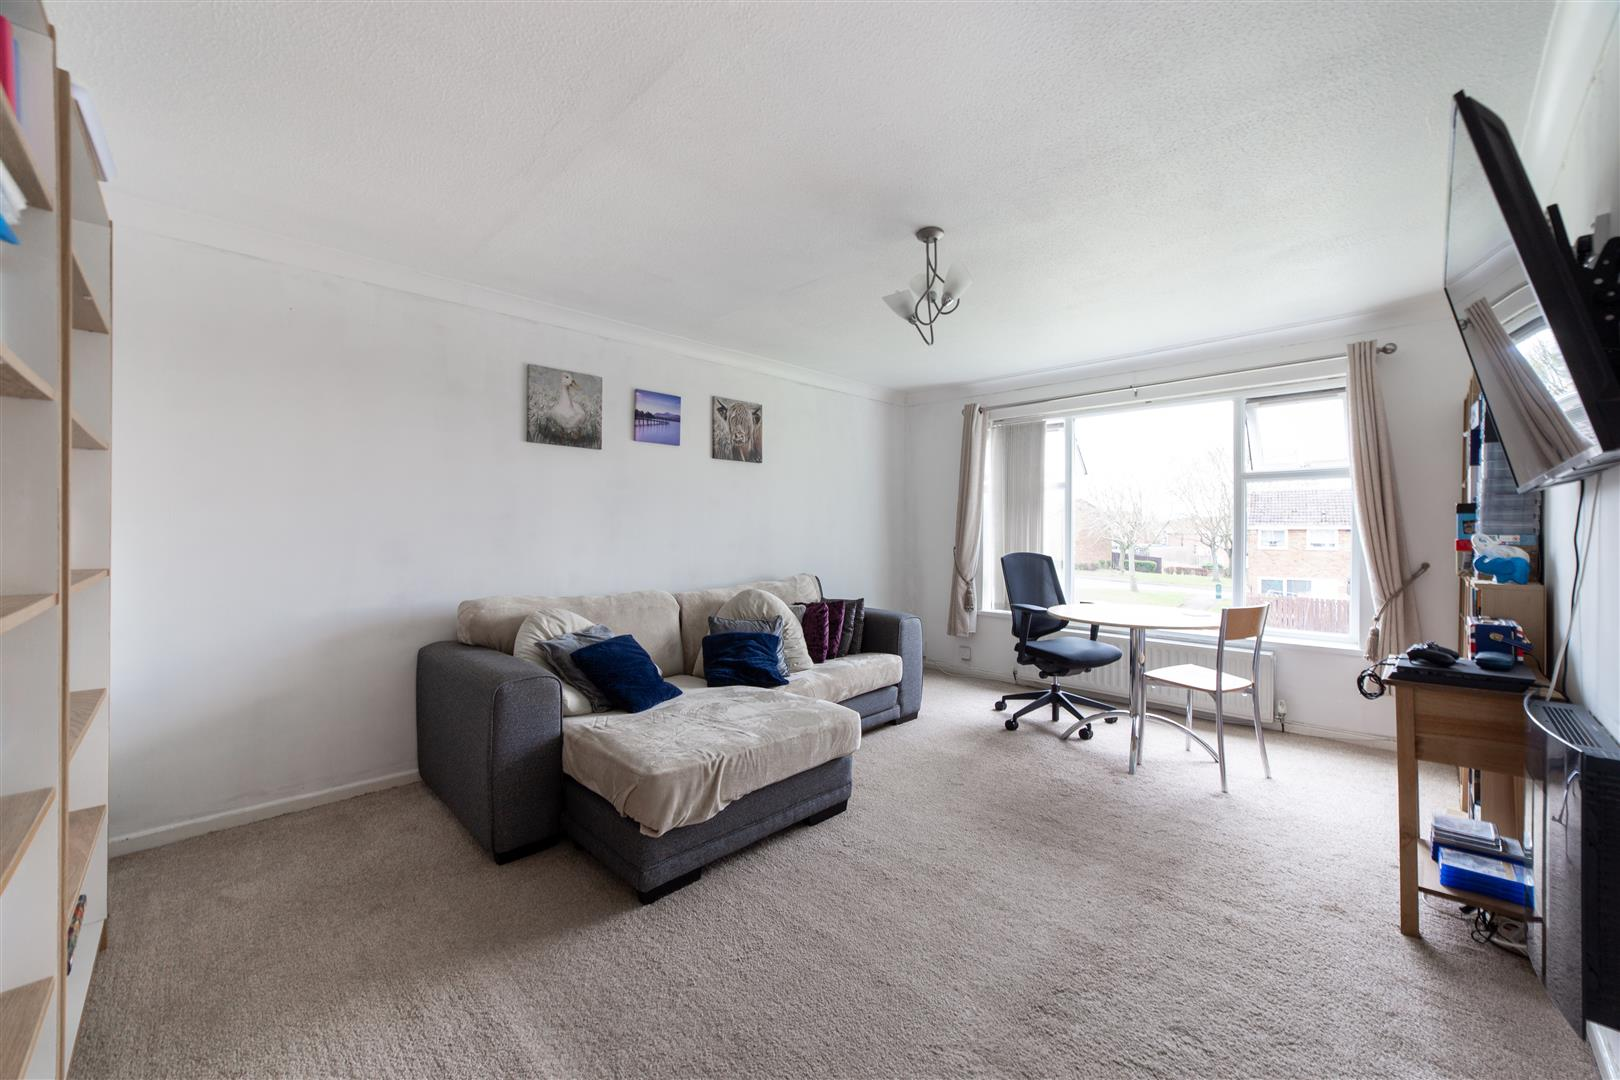 2 bed flat for sale in Westerhope, NE5 3SL, NE5